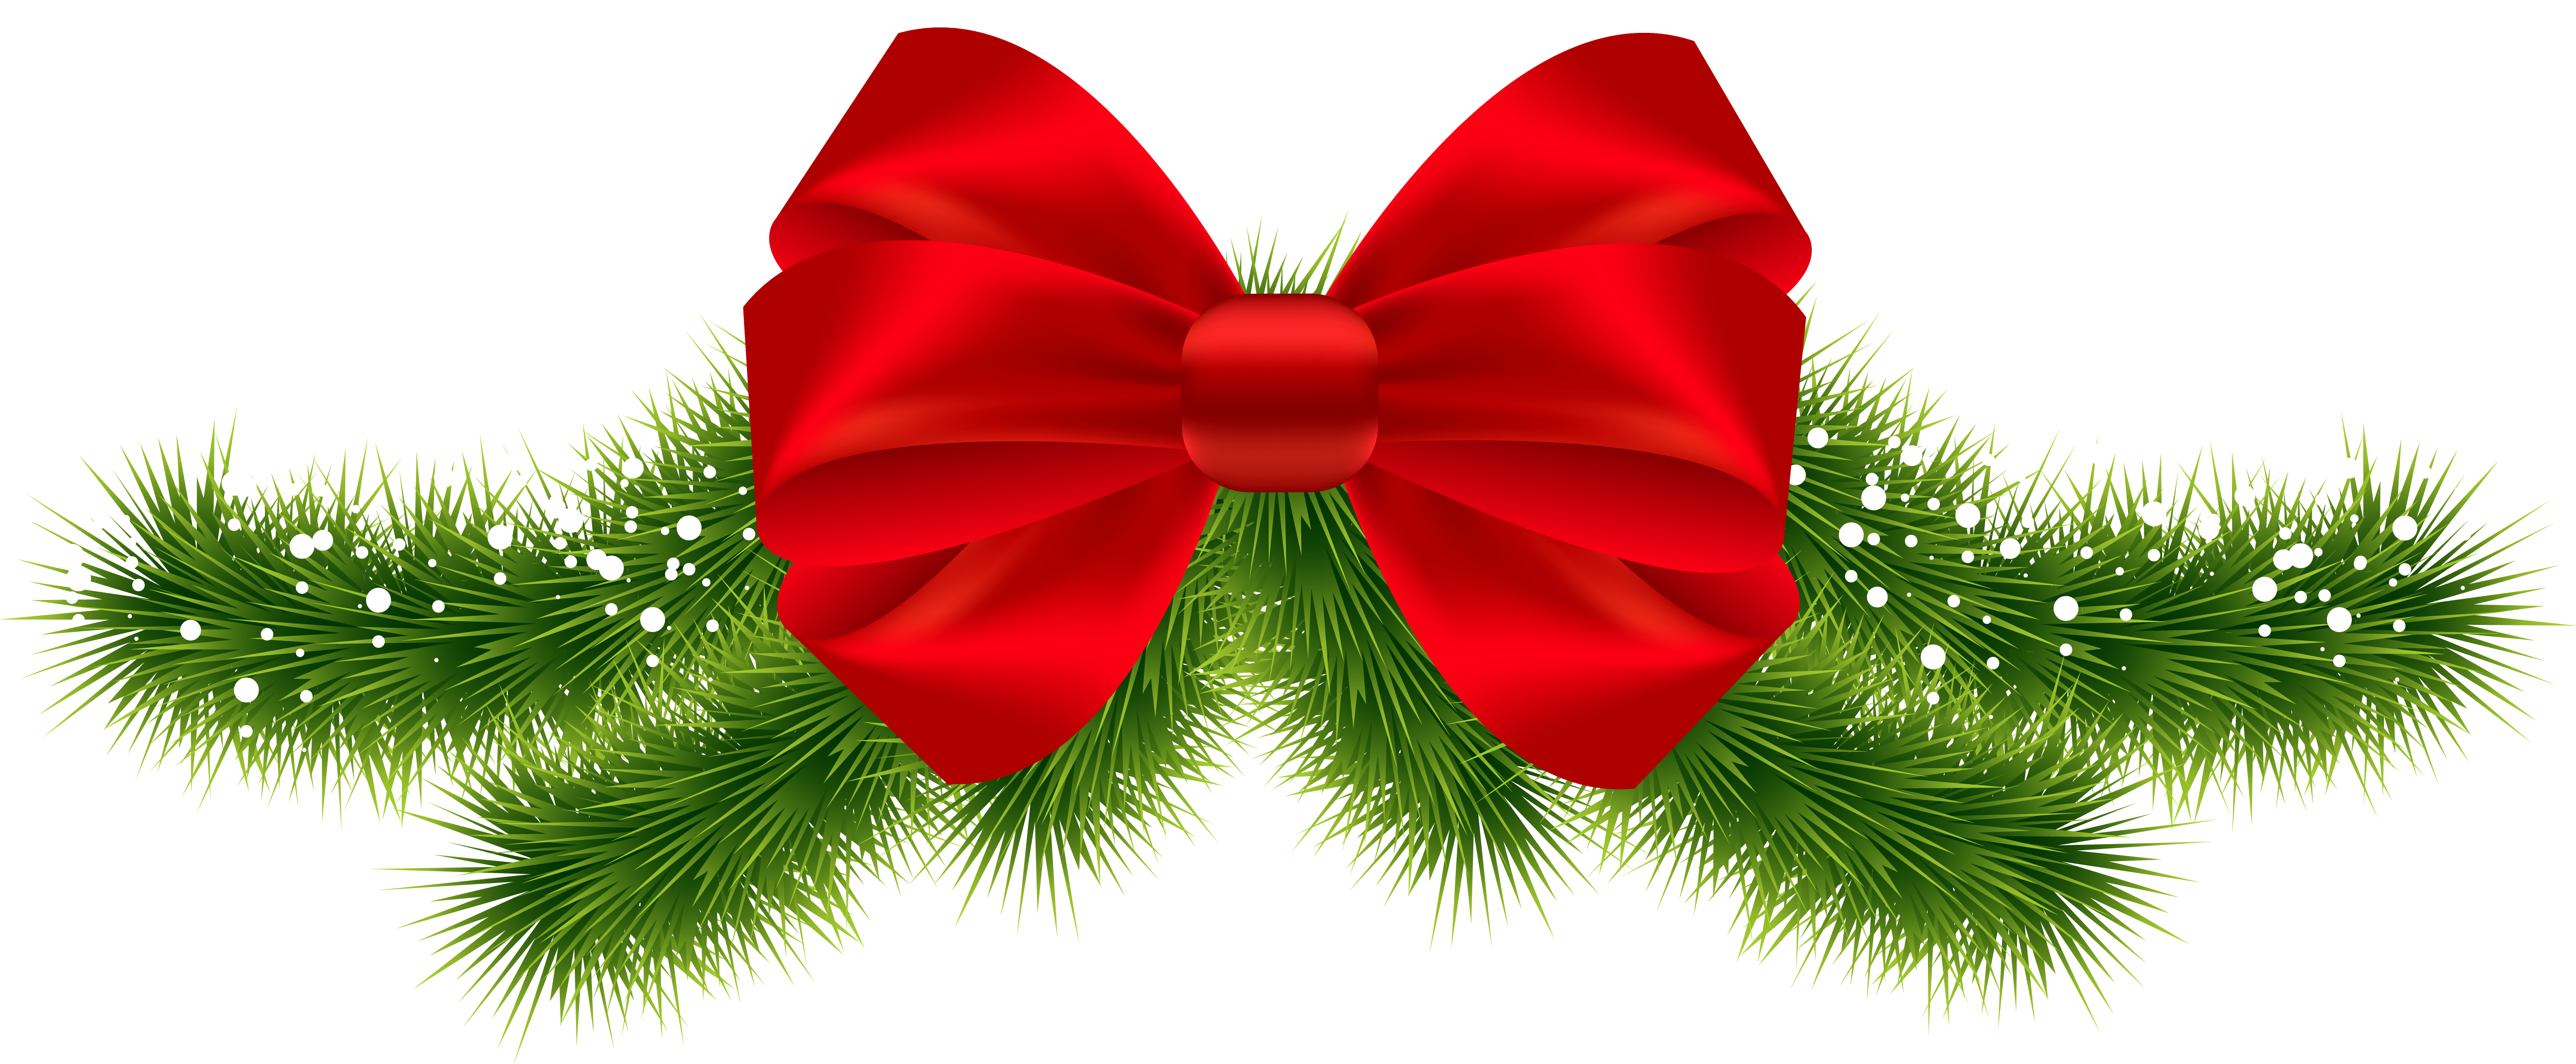 Christmas Red Bow PNG Clipart Image.